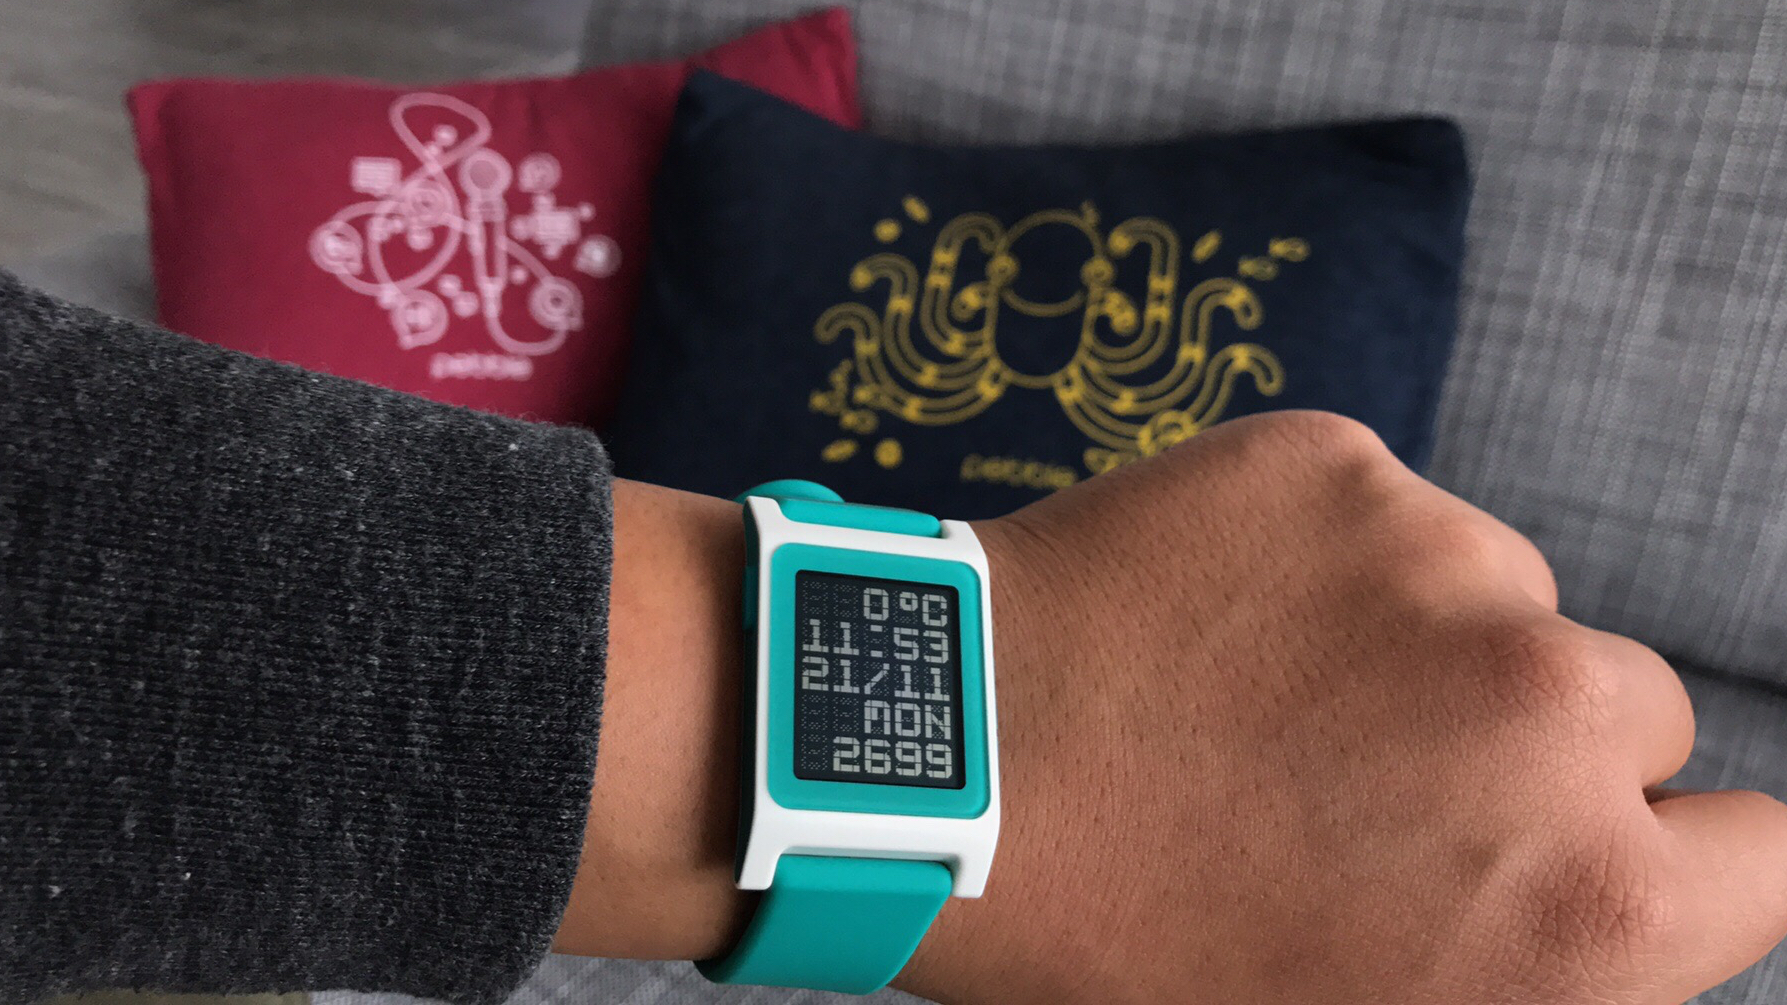 Pebble gets serious about heart rate